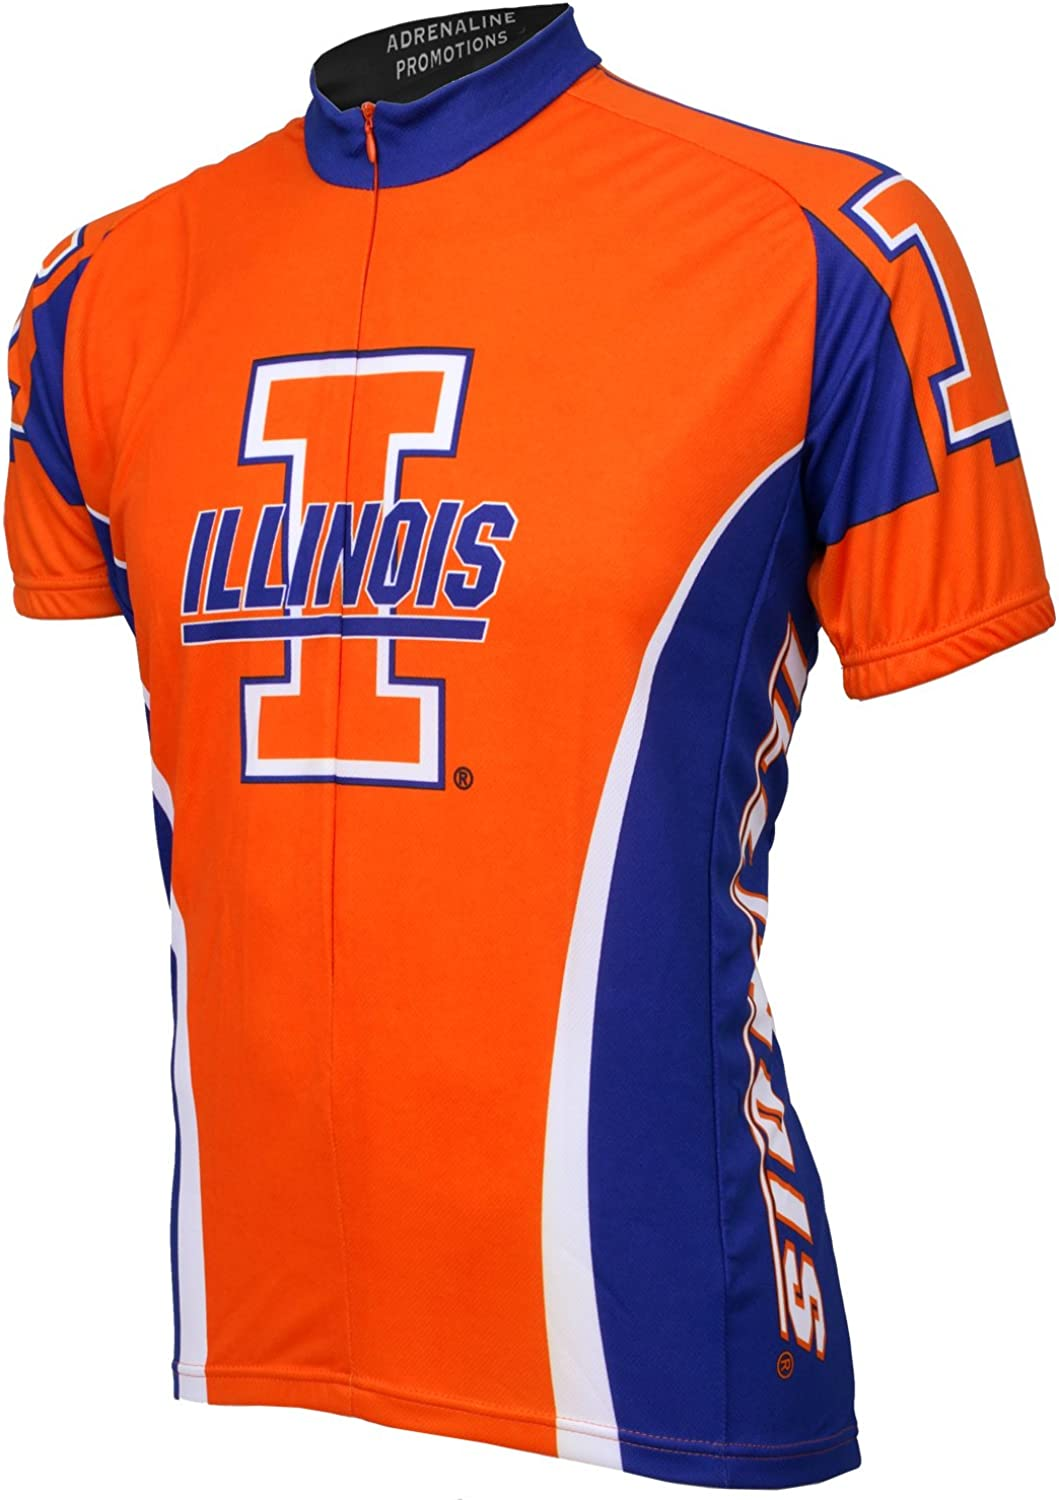 Super popular specialty store Adrenaline Promotions Indianapolis Mall Illinois Fighting Illini Cycling Jersey